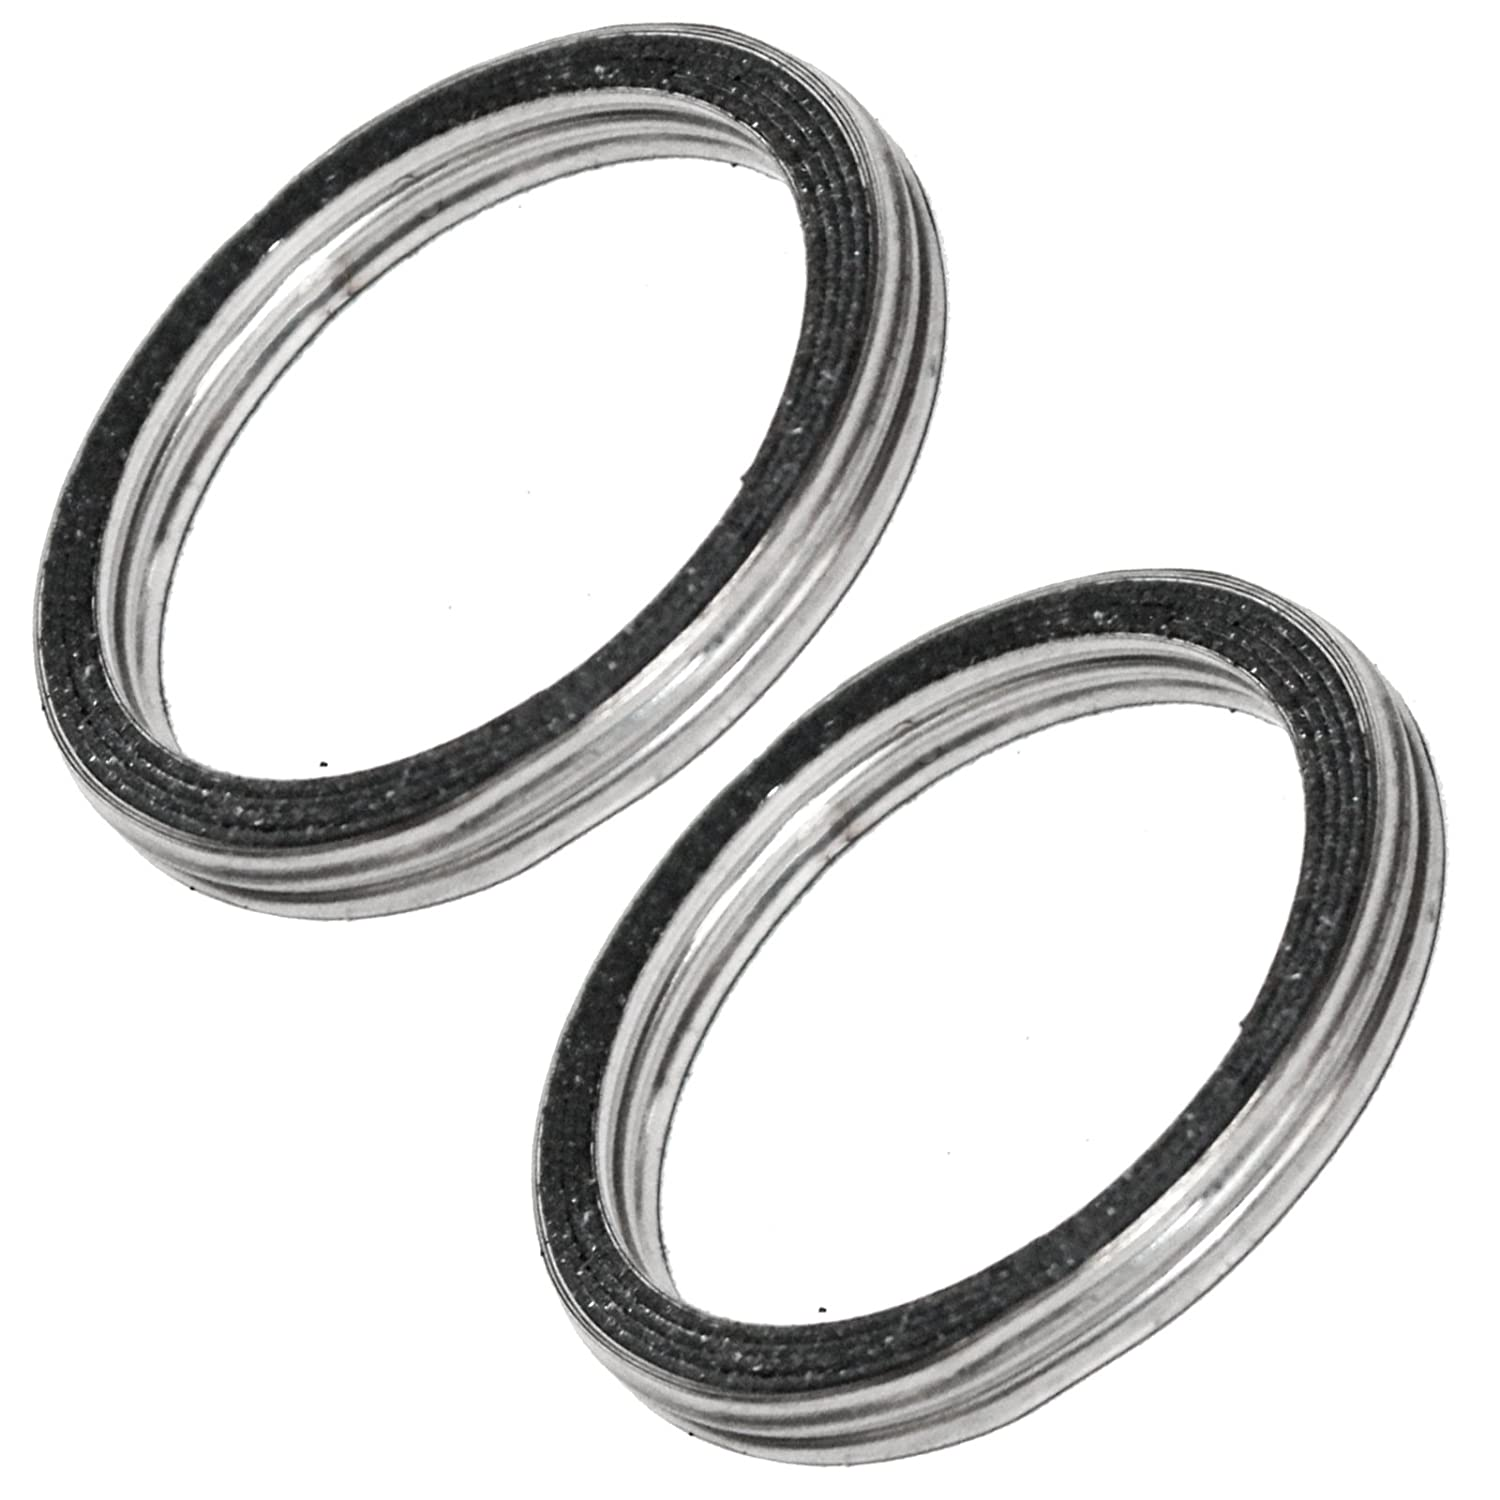 Amazon com: CALTRIC 2 Exhaust Muffler Pipe Gaskets Fits